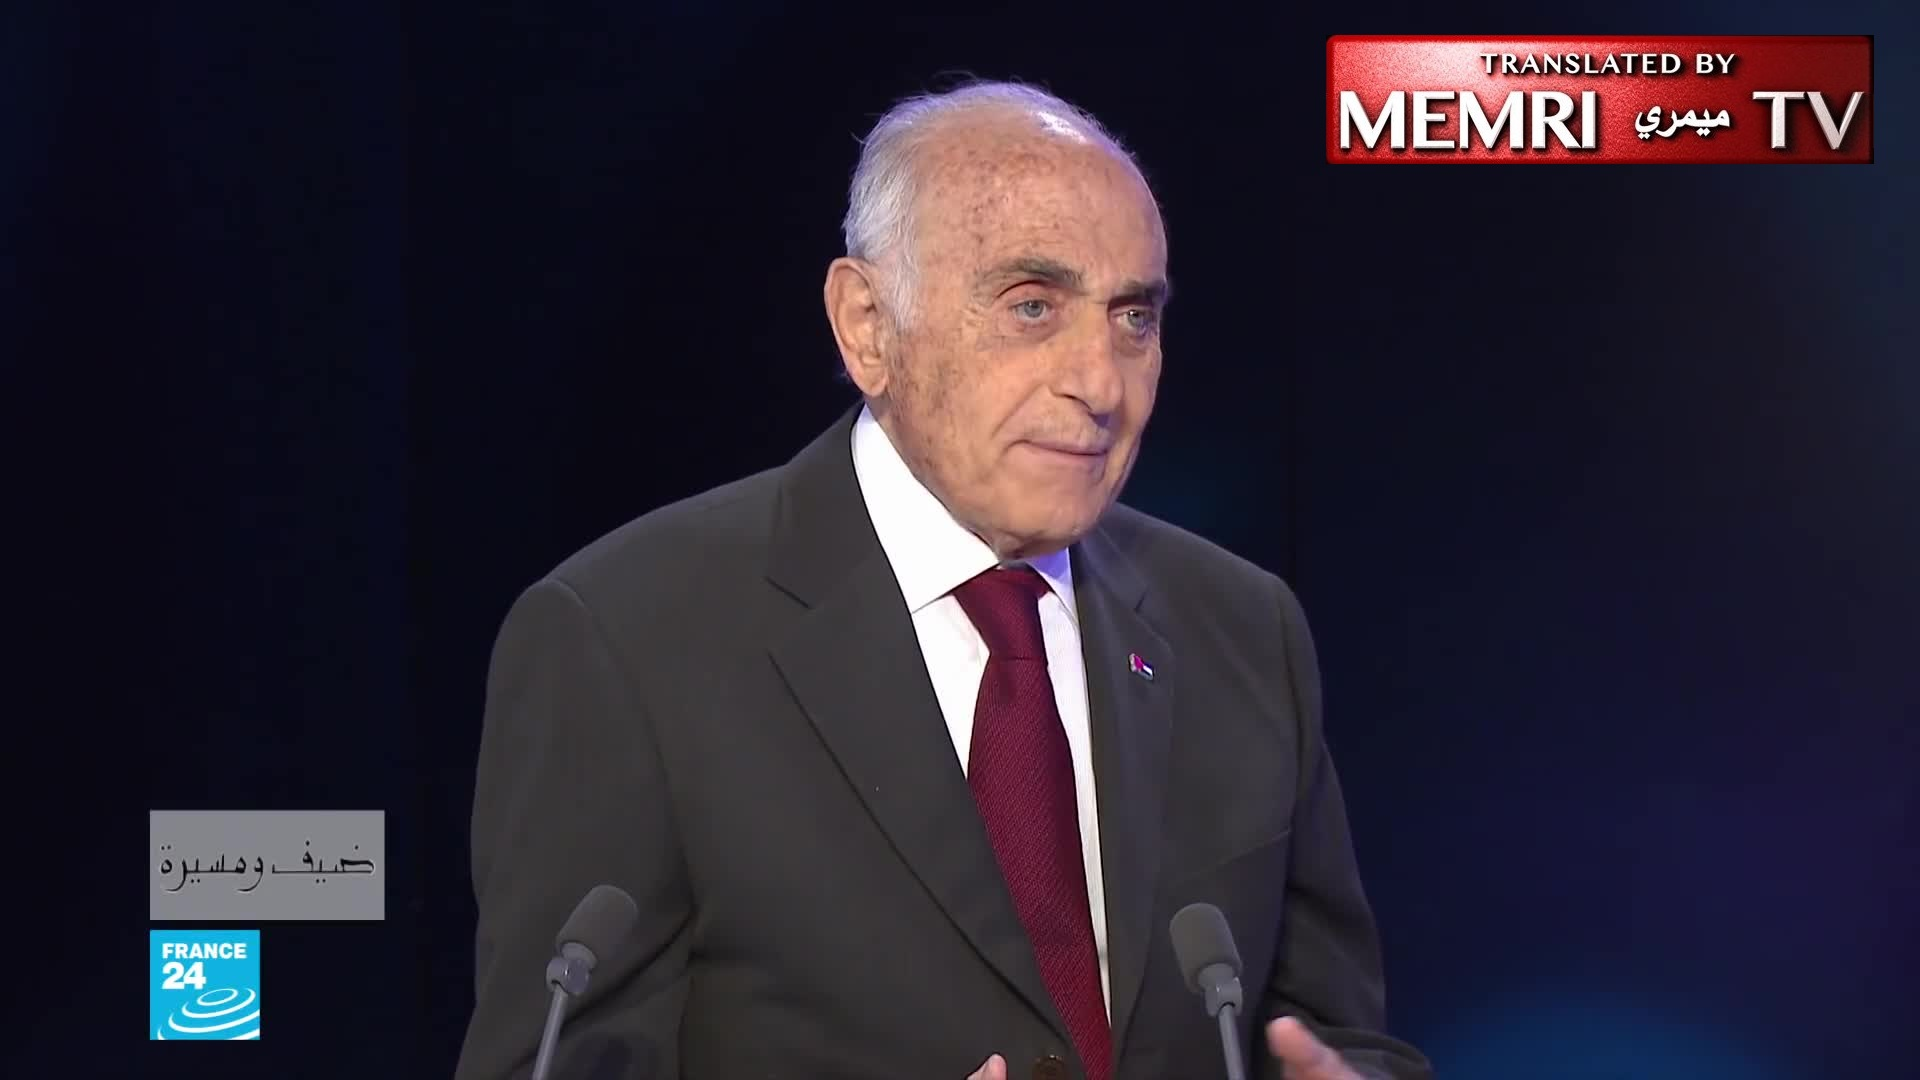 Palestinian Tycoon Munib Al-Masri: Israel Has 300-Year-Old Plan to Expand From Nile to Euphrates; Deal of the Century Cannot Pass As Long As Palestinians Live